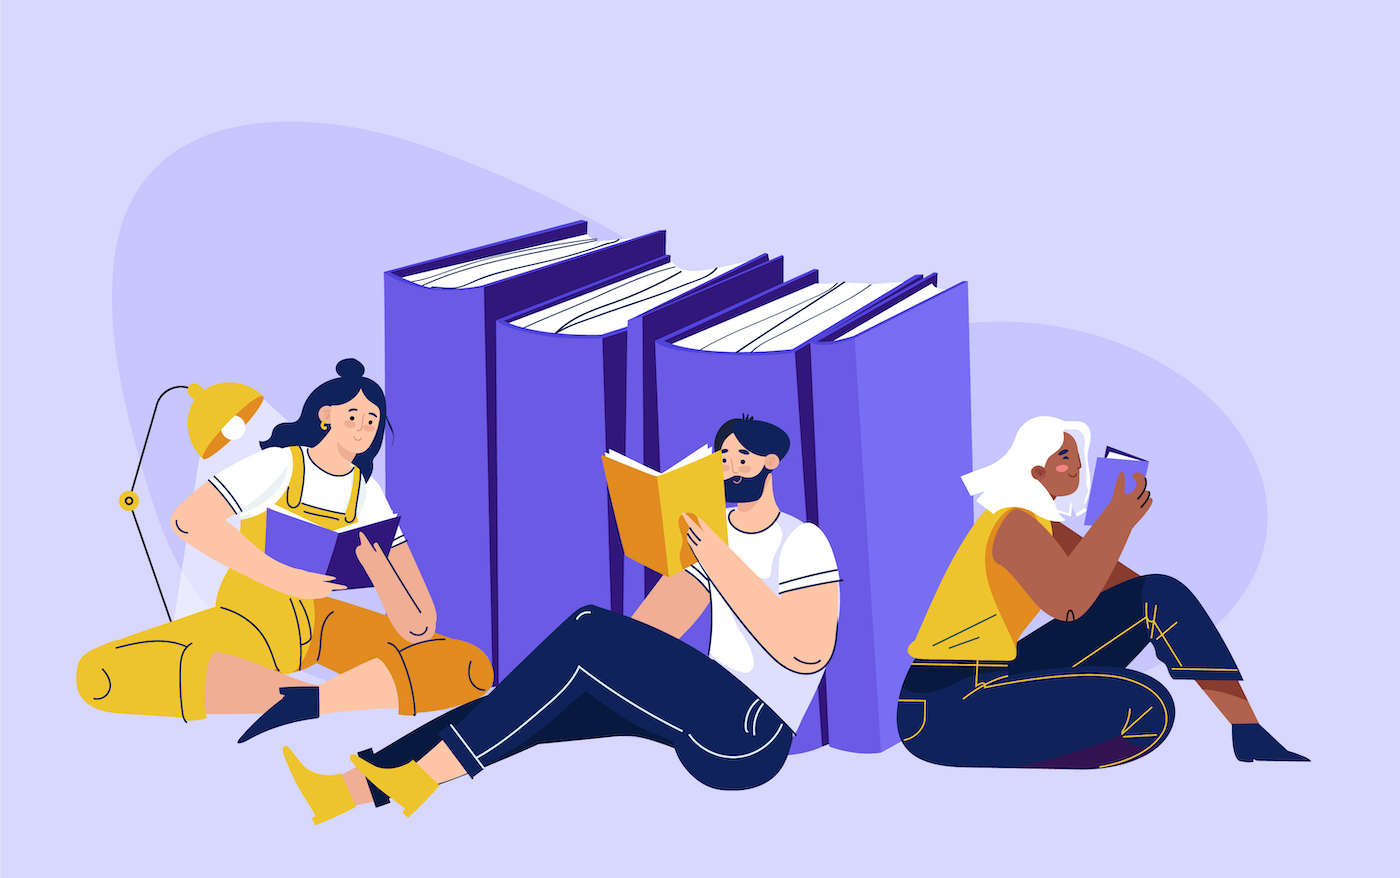 13 Melhores Livros sobre Marketing que Você Precisa Ler em 2021 ➤ a Menina Digital, Redes Sociais, Search Engine Optimization, Video Marketing, Content Marketing, Social Media, Estratégias Online, Estratégias Digitais, Marketing Digital